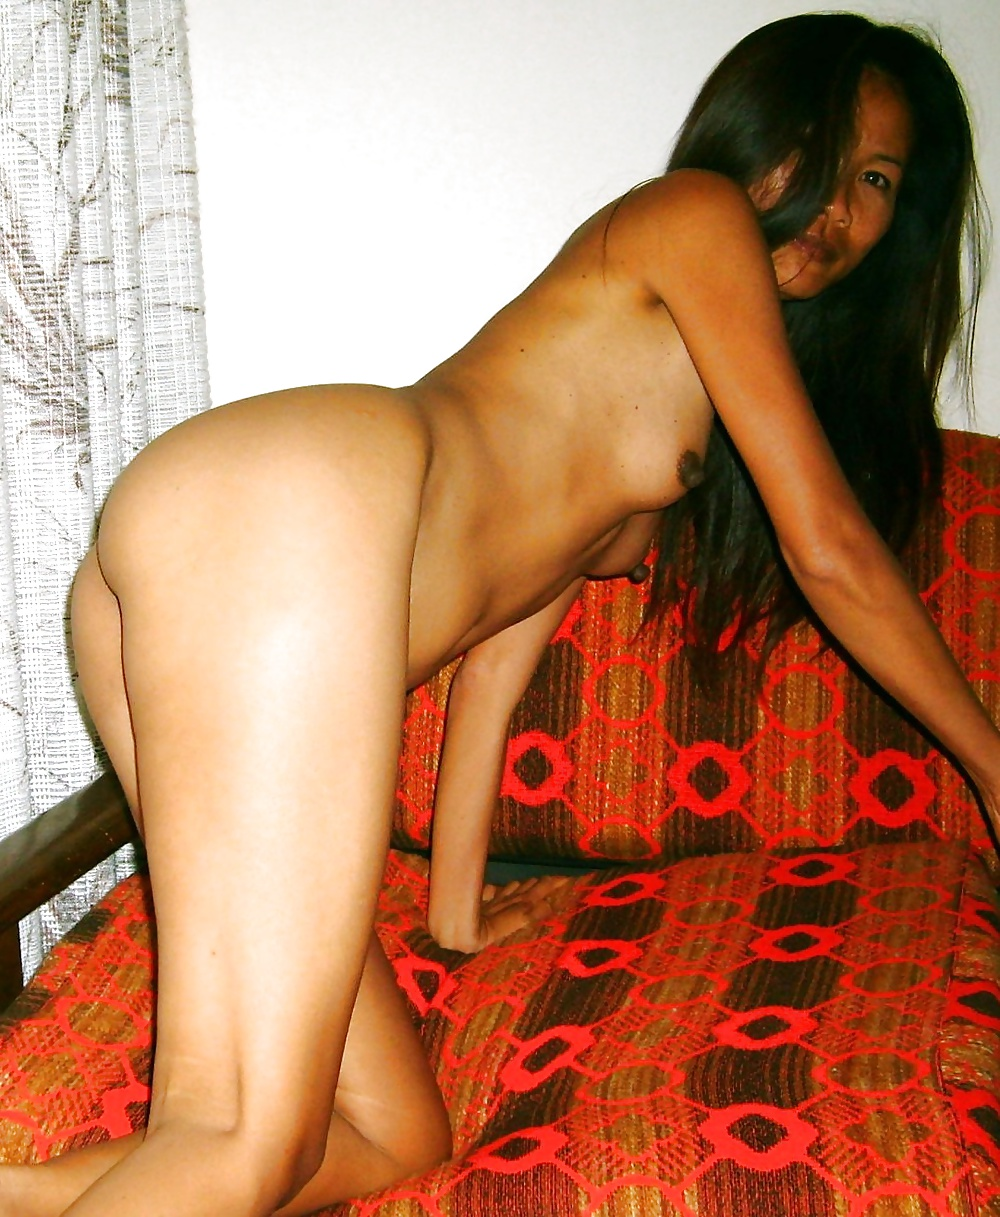 Asian Milf Sites 73